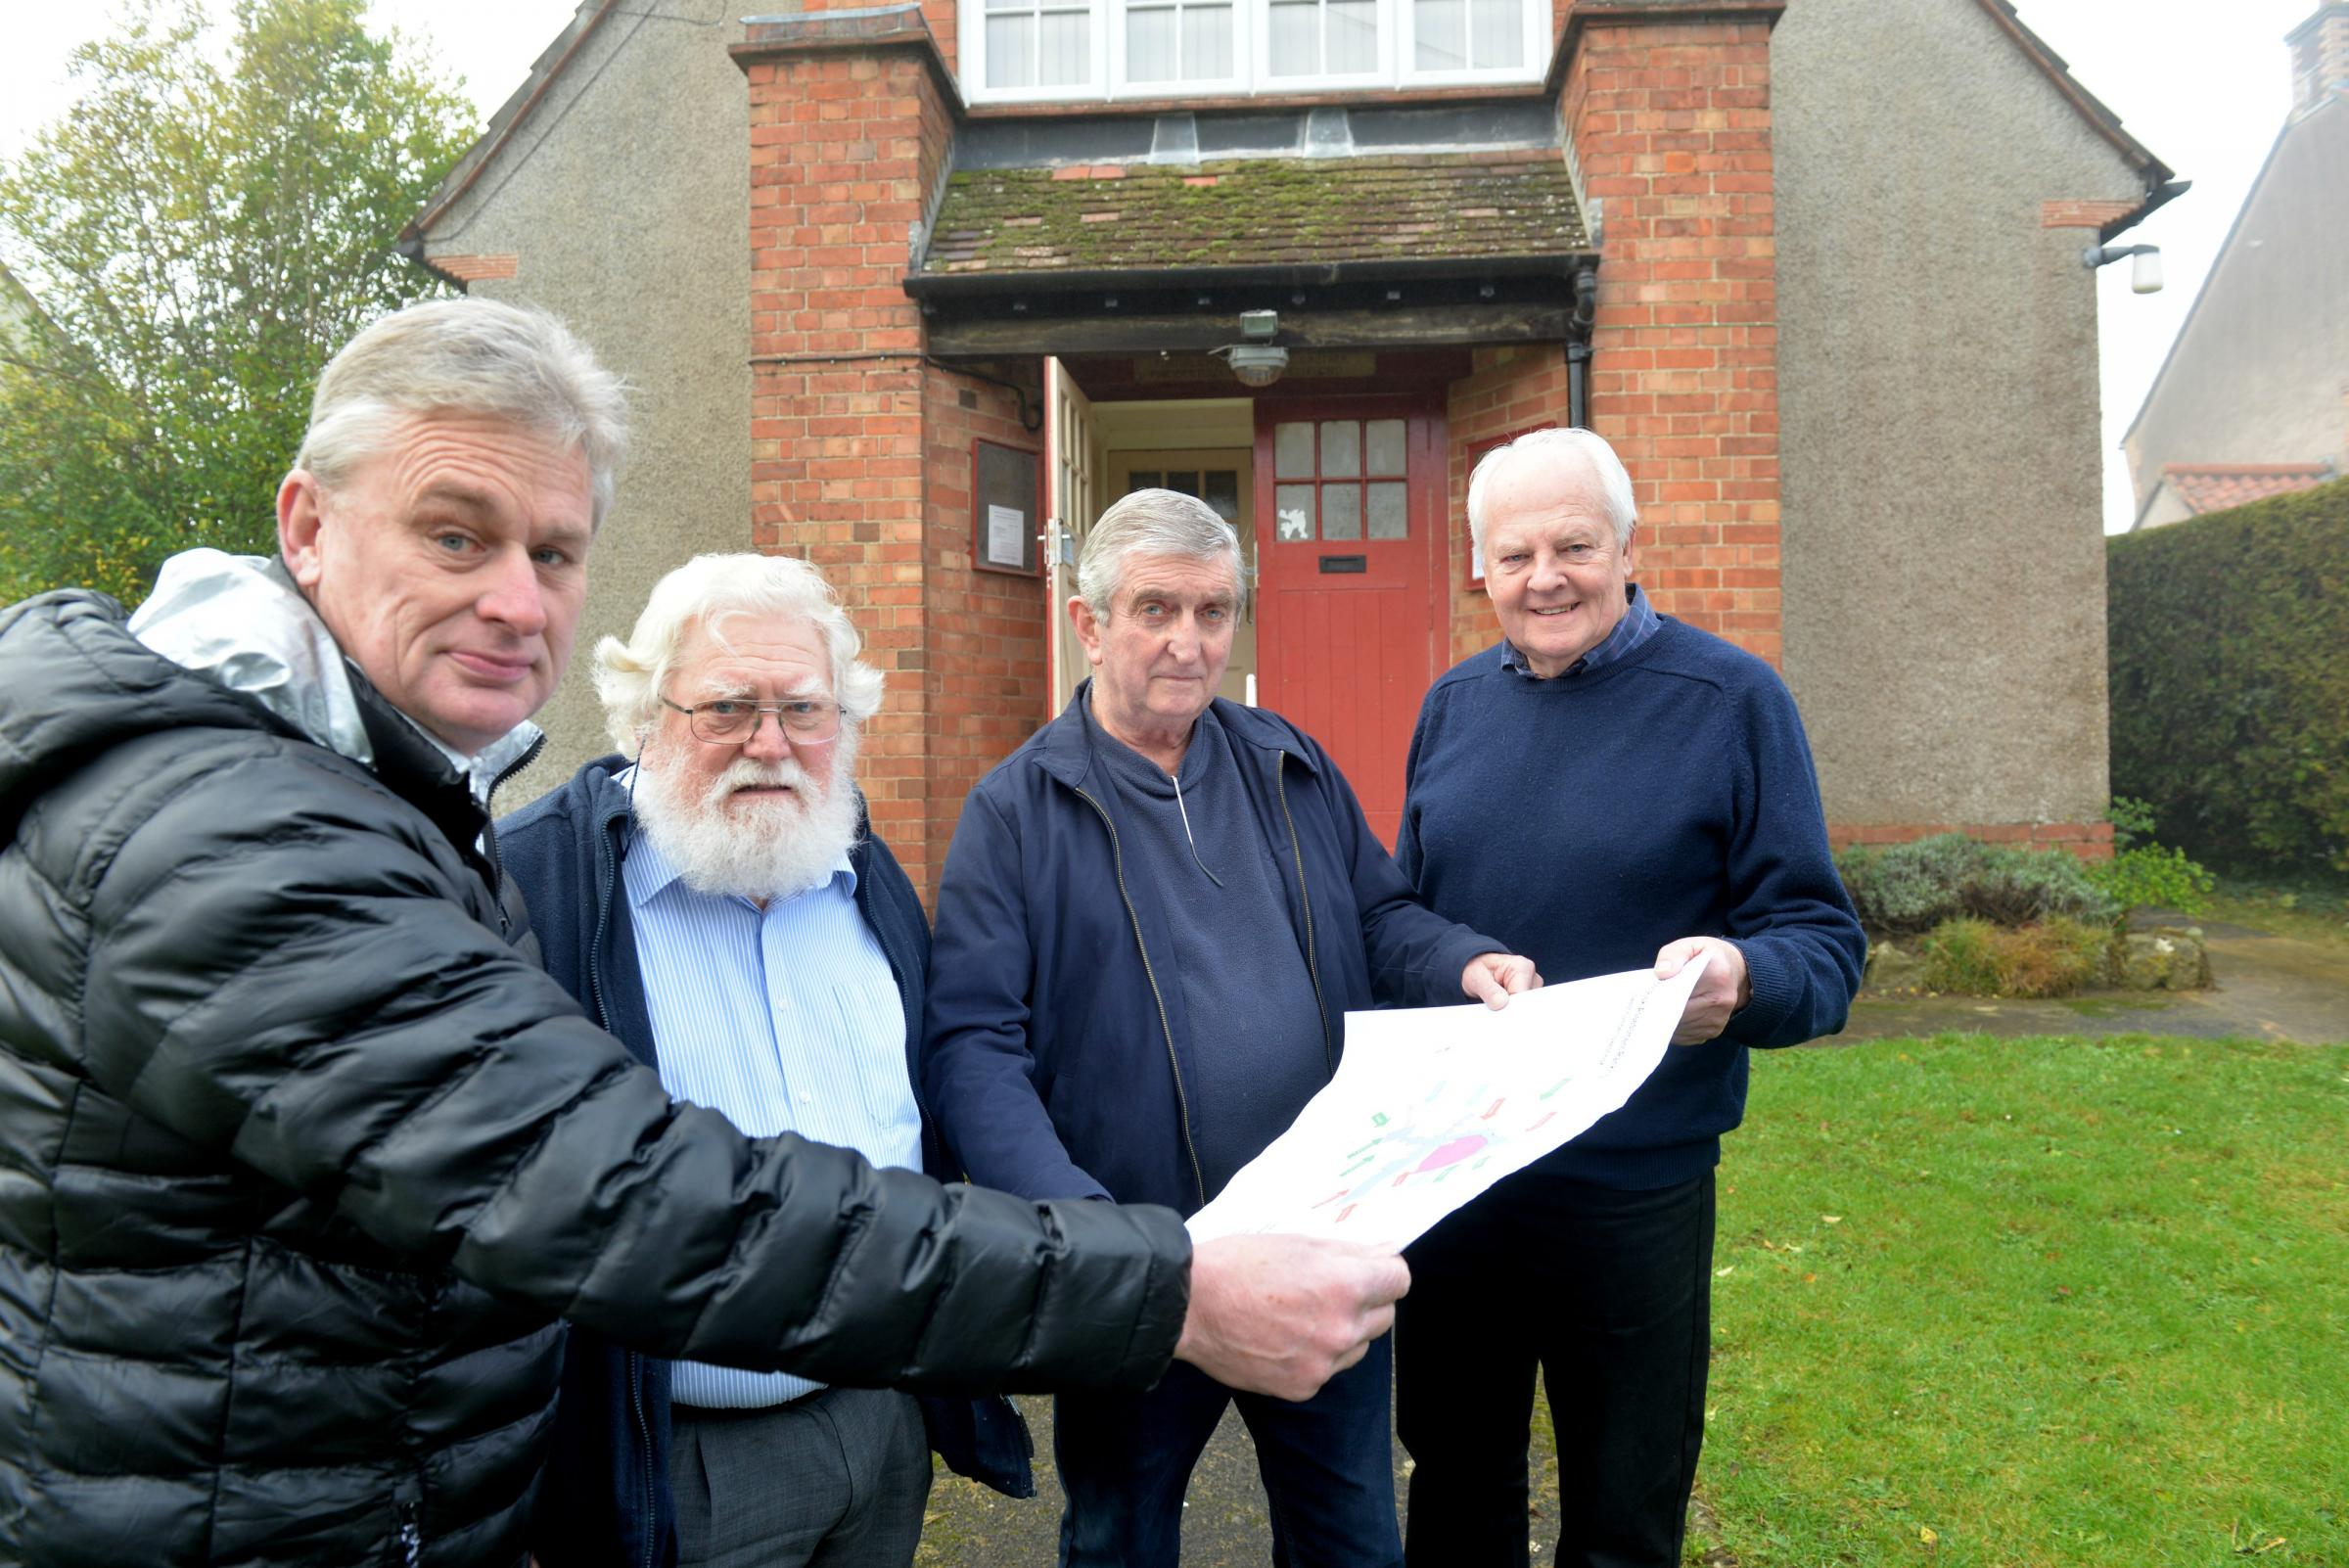 Oldbury residents called on to help shape village for the future